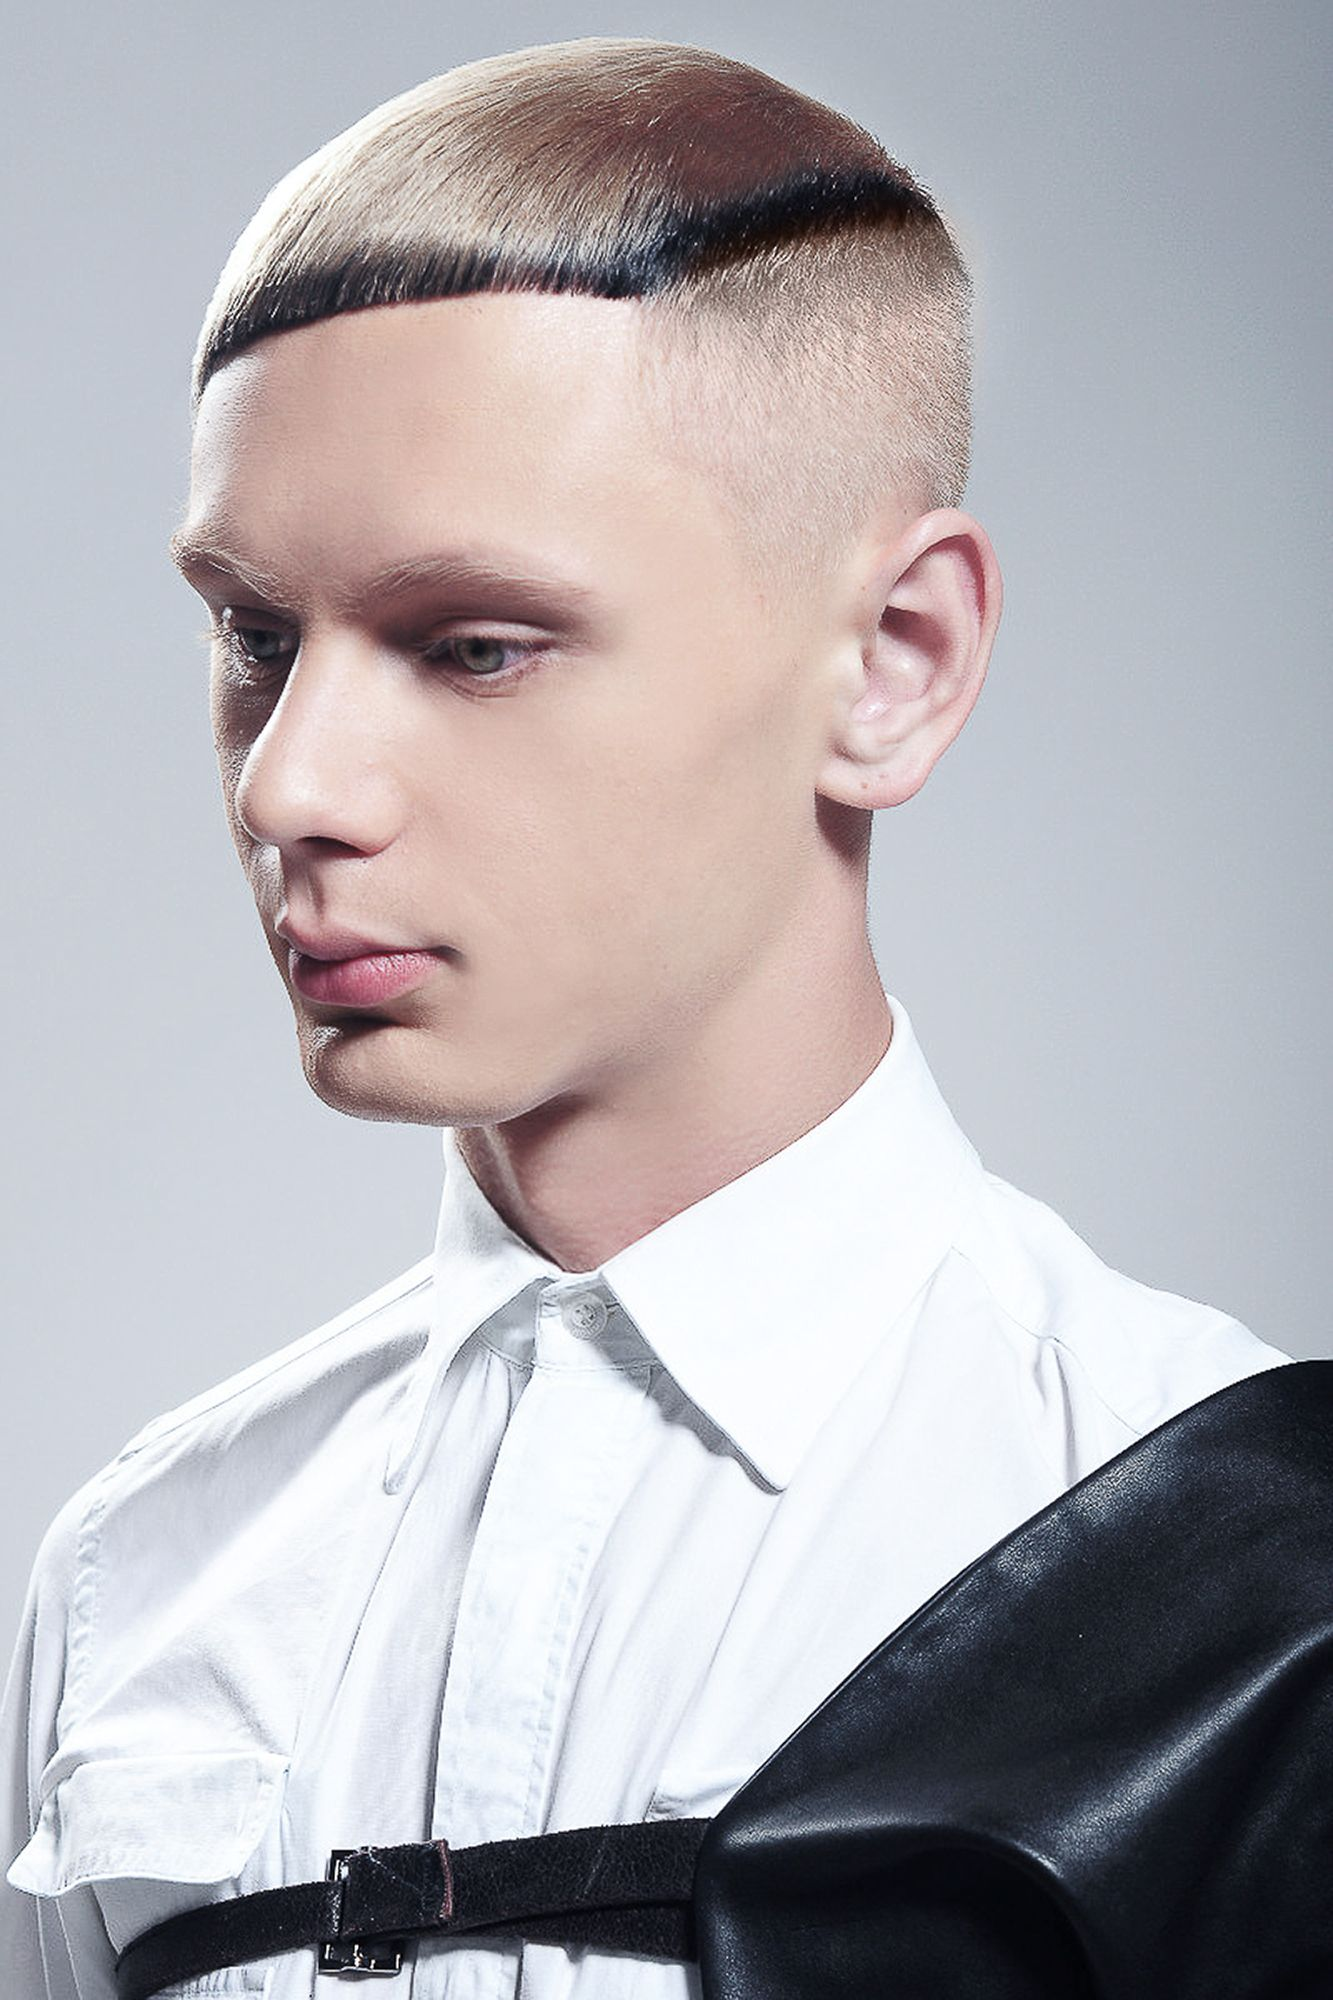 Sp men competition entry from russia salon natanya kovleva look modern sophistication